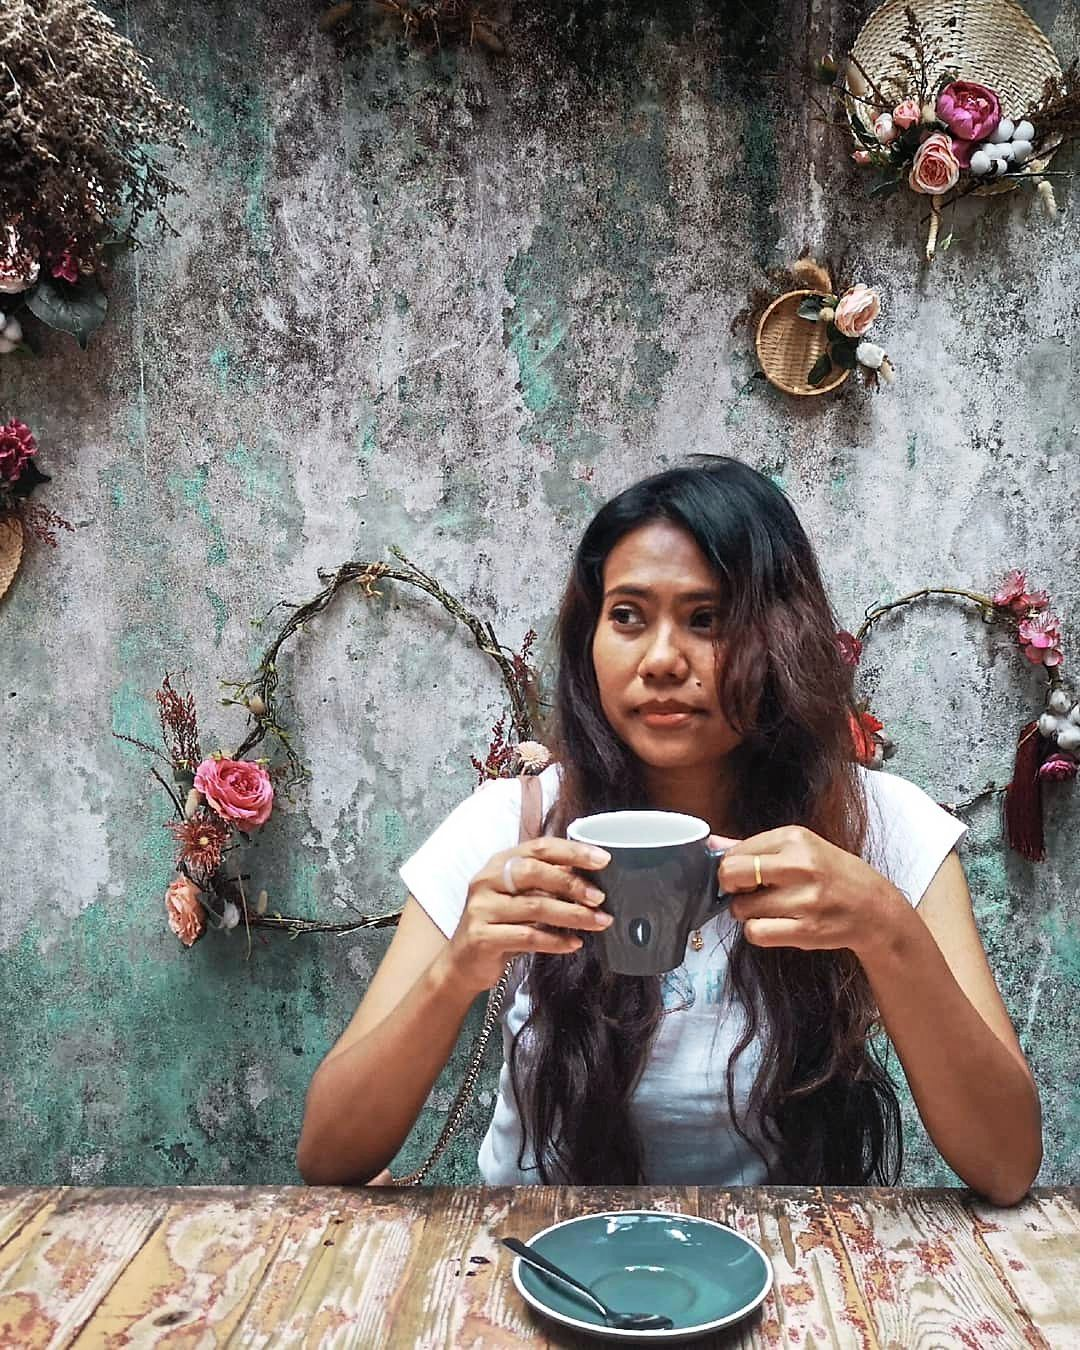 'Art to me is freedom, and expression. When I'm drawing, I escape into my head and that is when I am most present in the moment,' says Leny. Photo: LENY MAKNOH